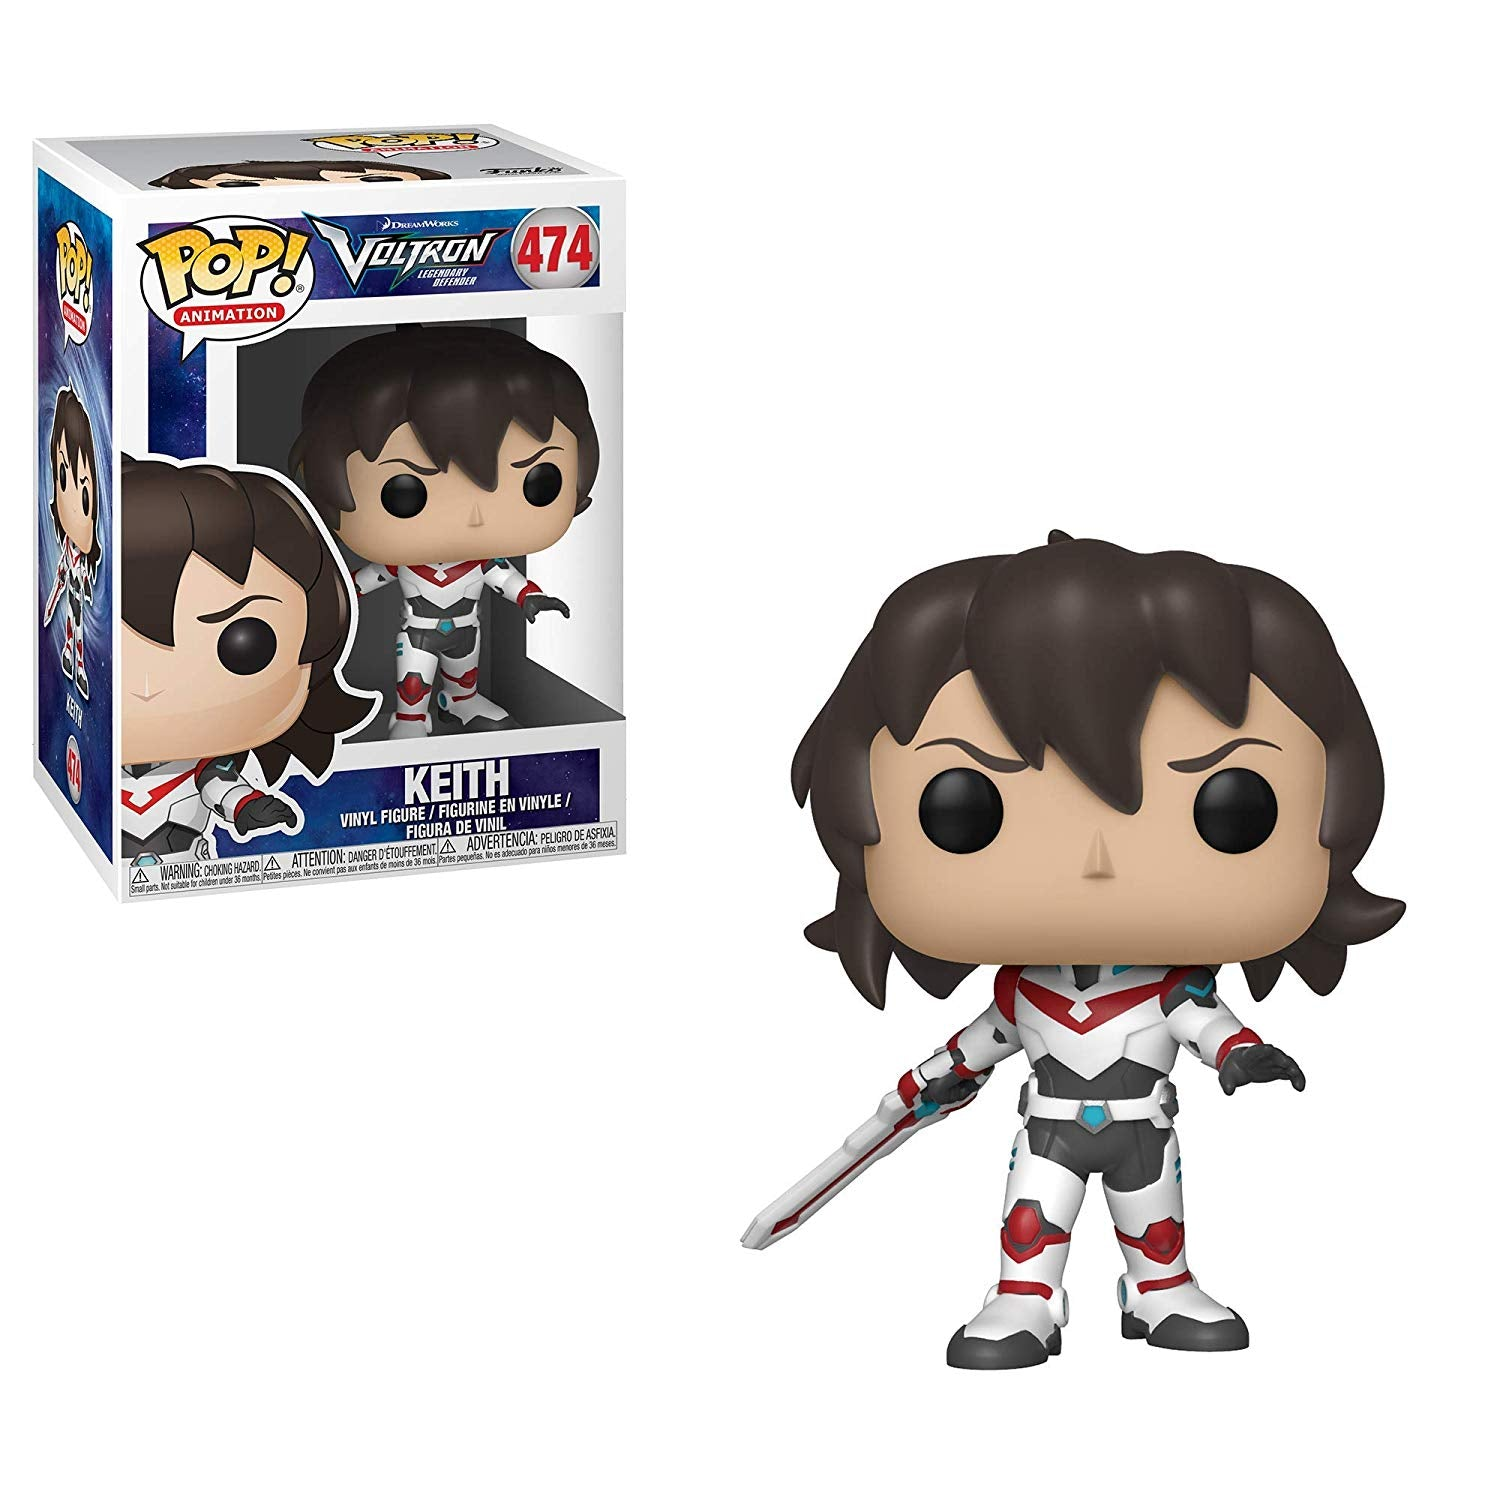 Funko POP! Animation #474 - Voltron Legendary Defender - Keith Vinyl Figure